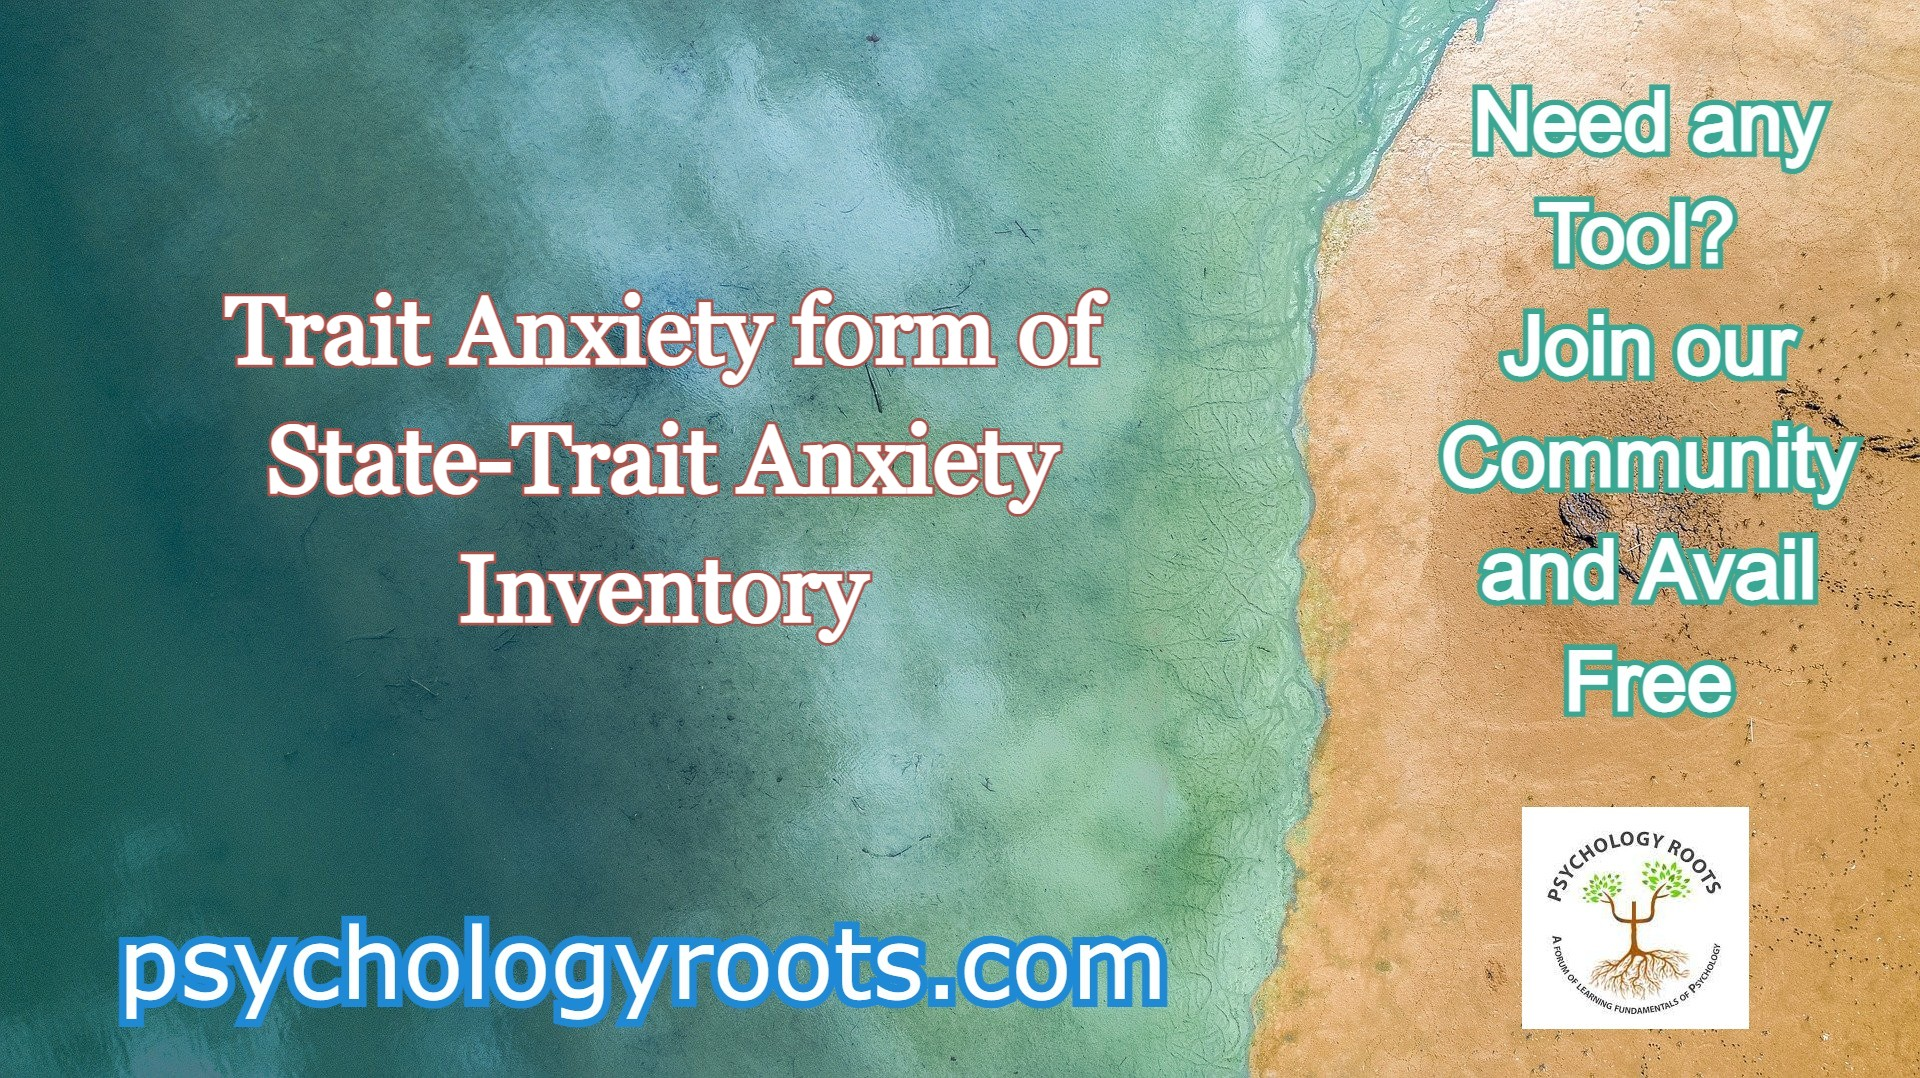 Trait Anxiety form of State-Trait Anxiety Inventory